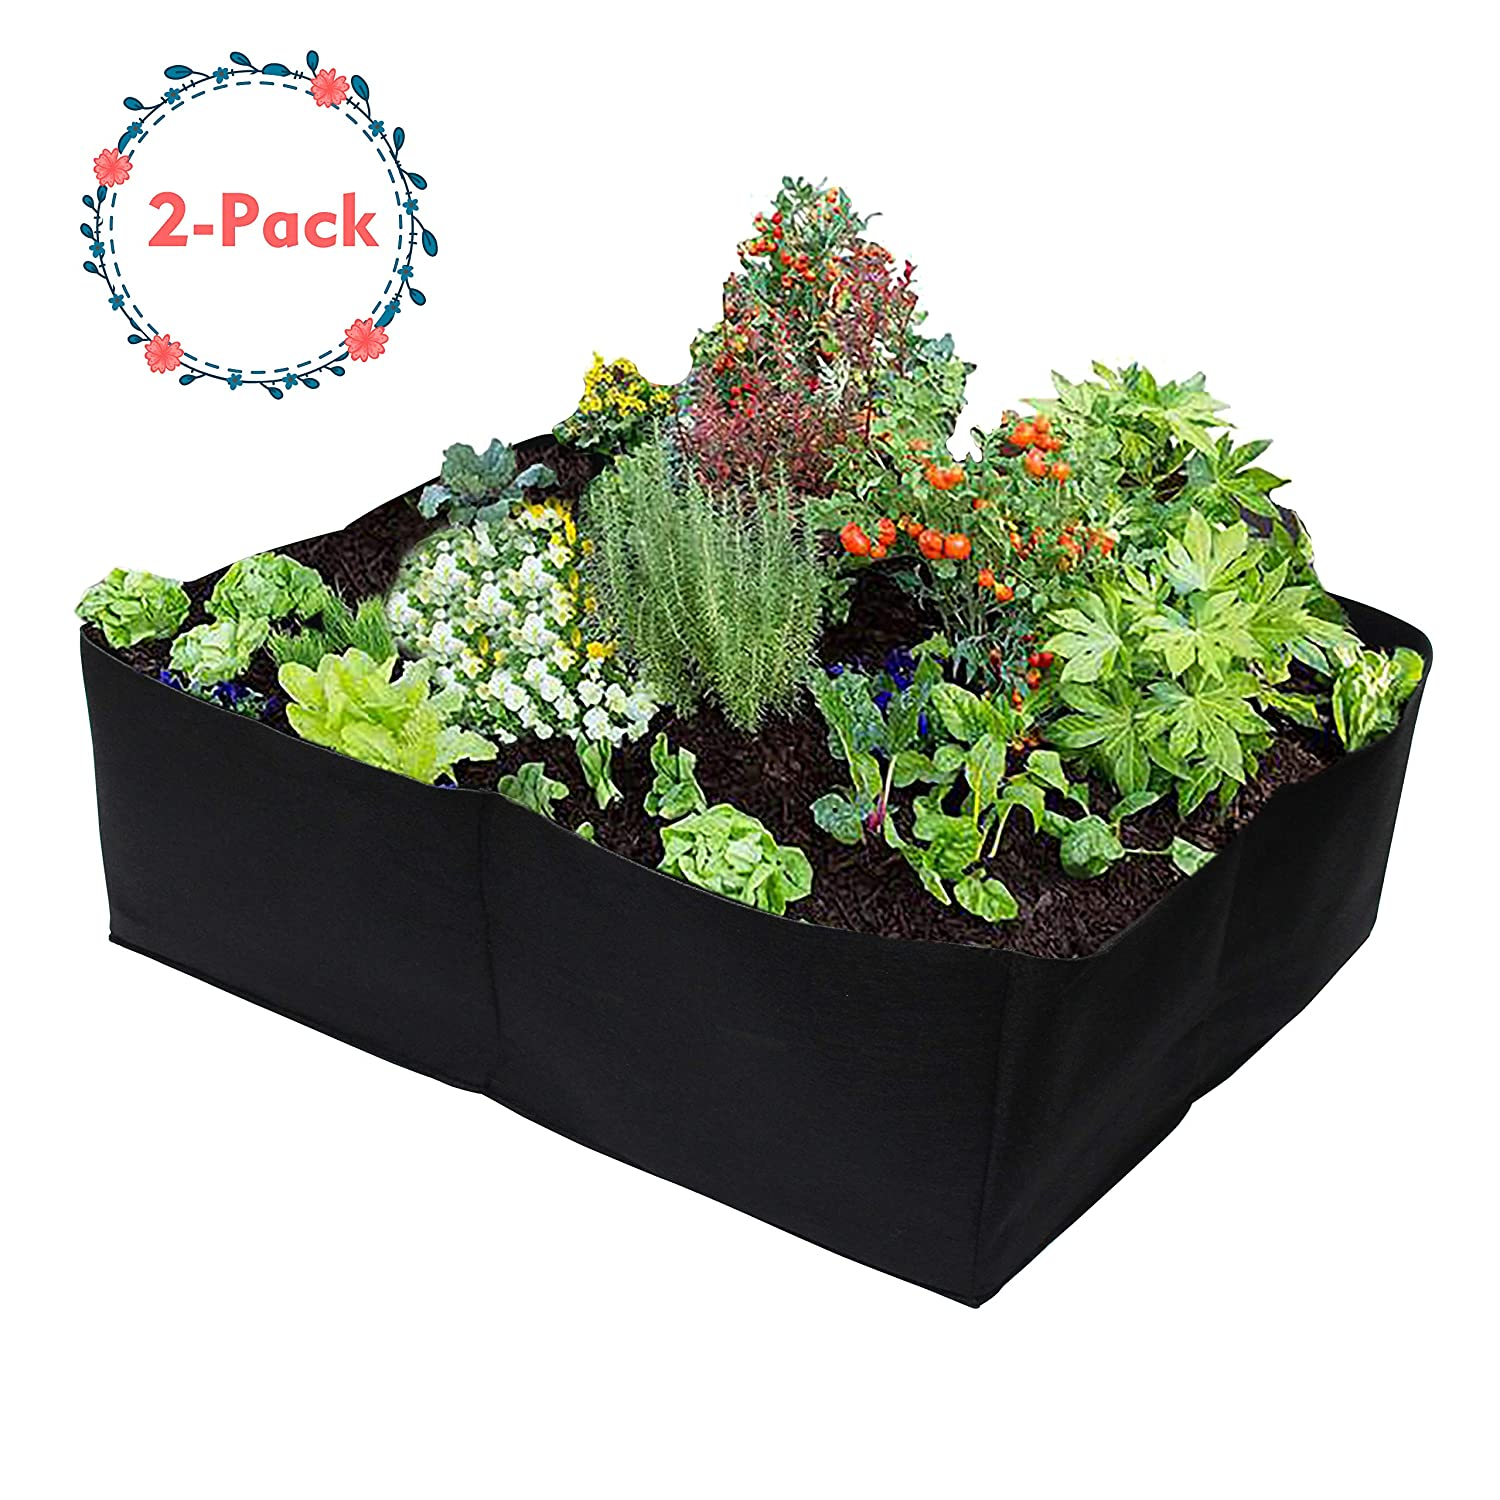 Gardzen 2 Pack Divided Raised Vegetable Bed, Square Foot Gardening 2Feet x 2Feet - Having Your Own Garden